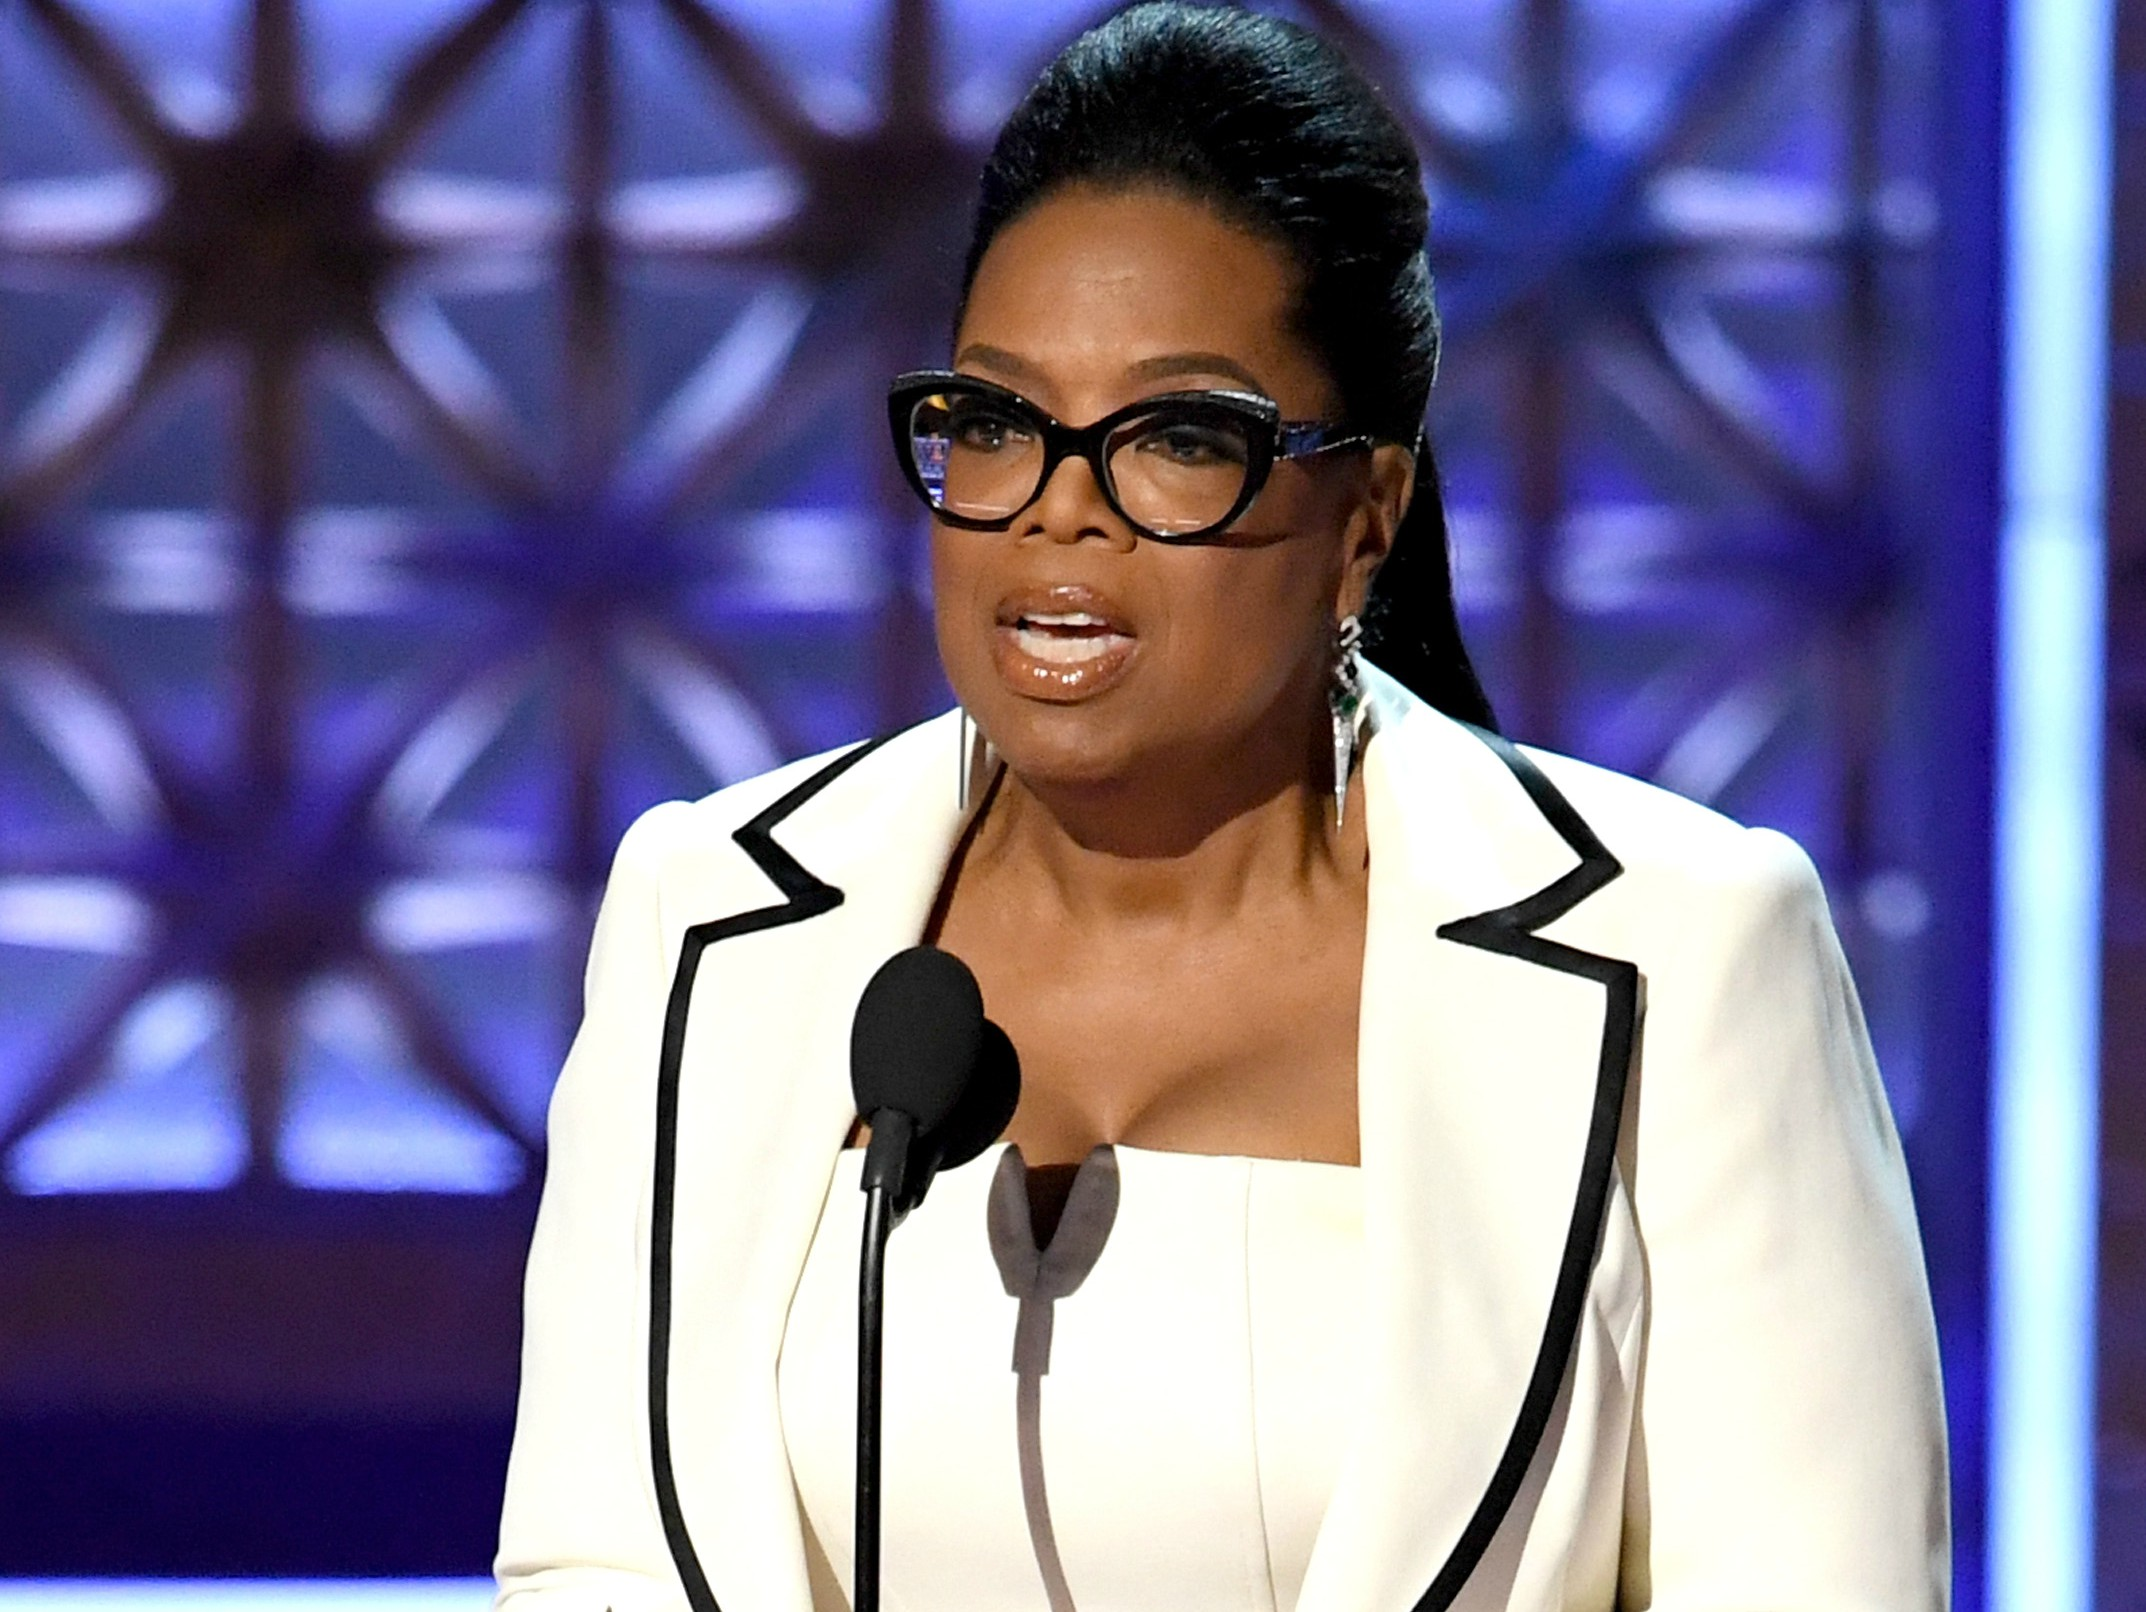 Oprah warns fans about online scammers impersonating her on Instagram